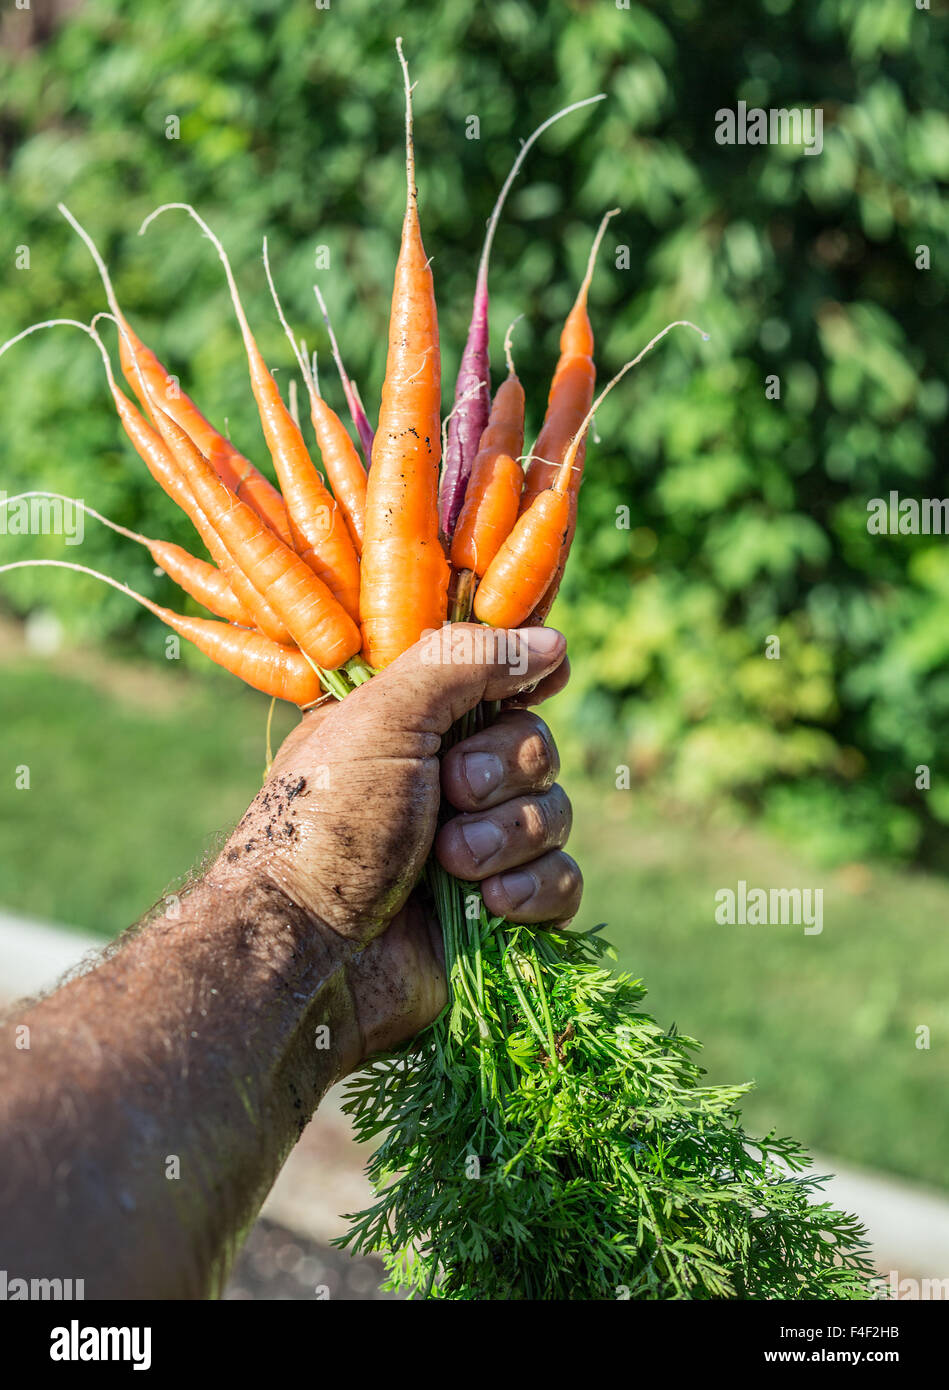 Carrots  in man's hand. - Stock Image